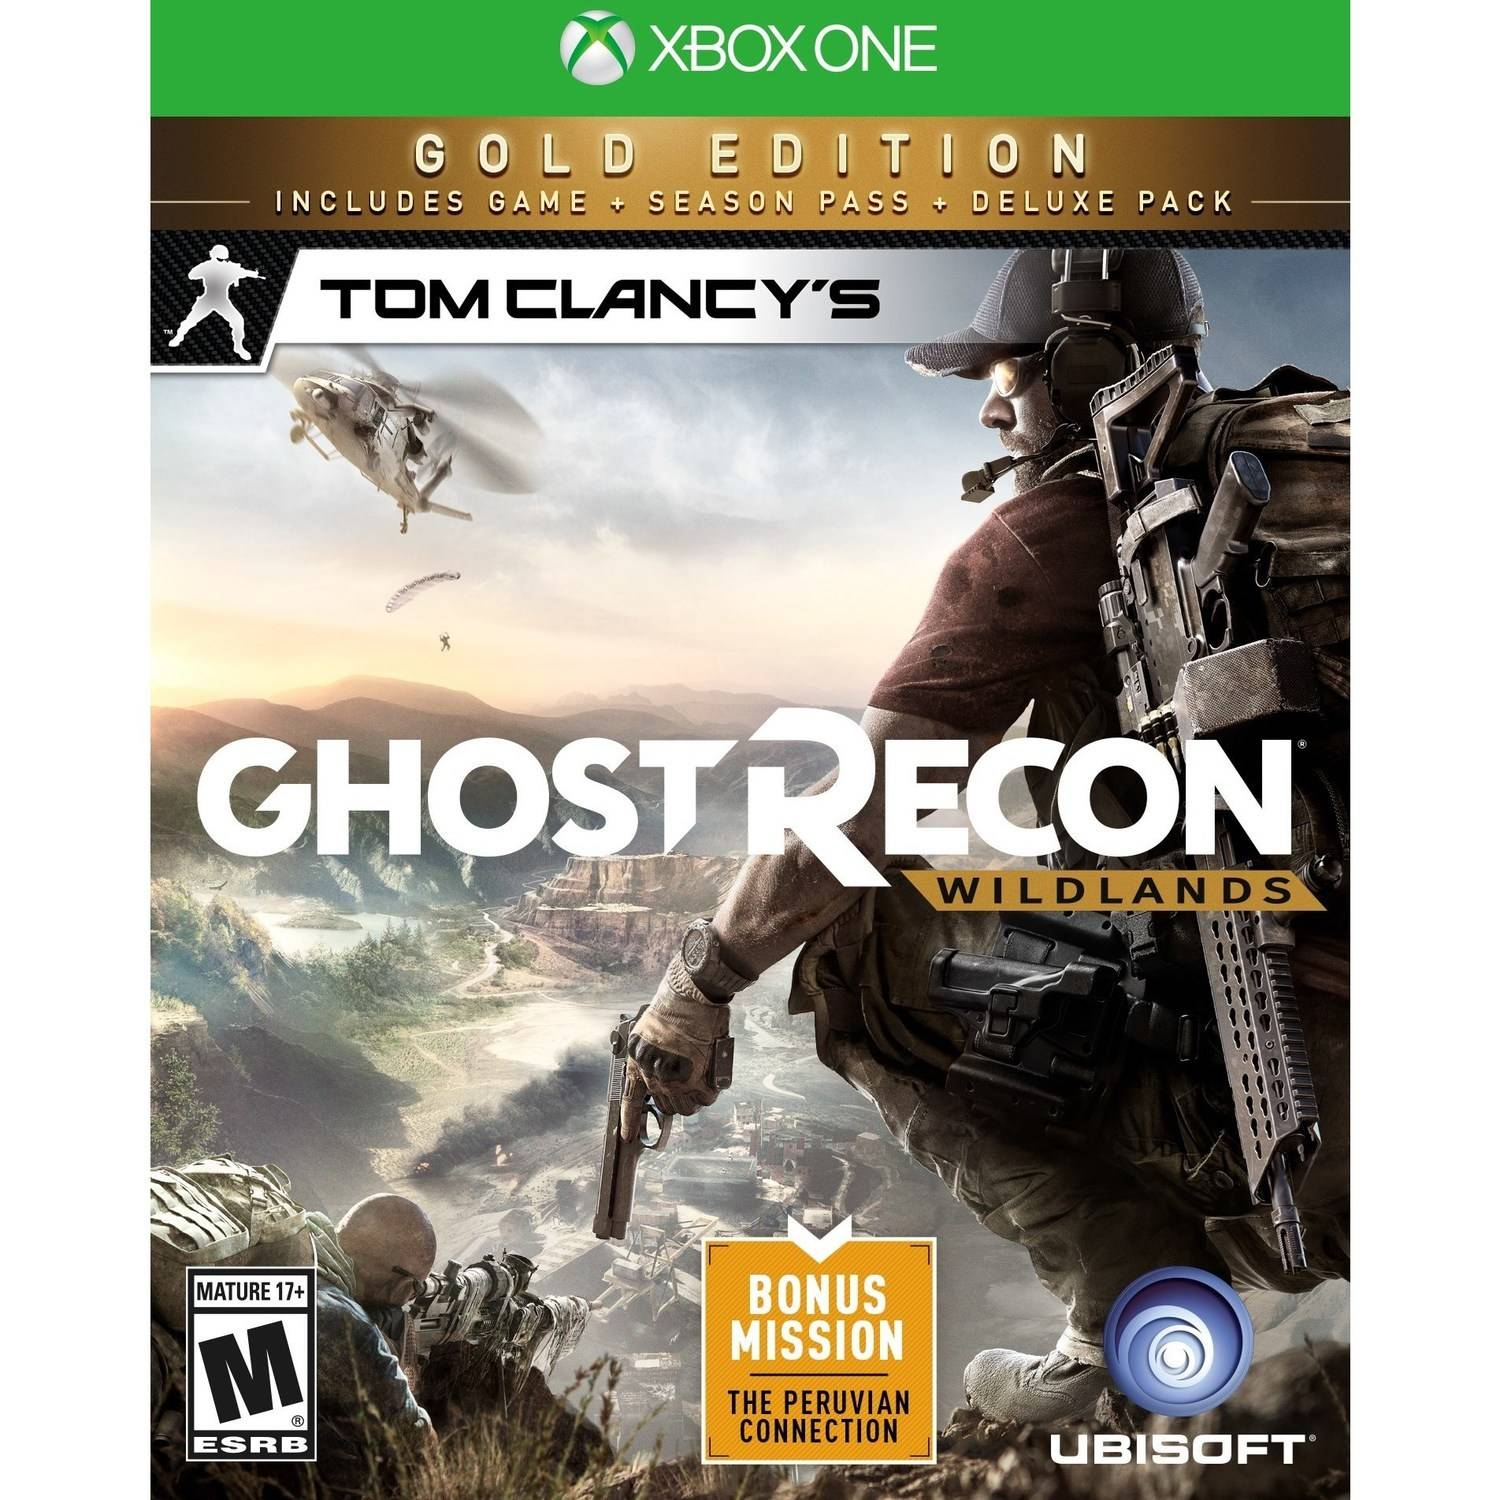 Tom Clancy's Ghost Recon Wildlands Gold Edition (Xbox One) by Ubisoft